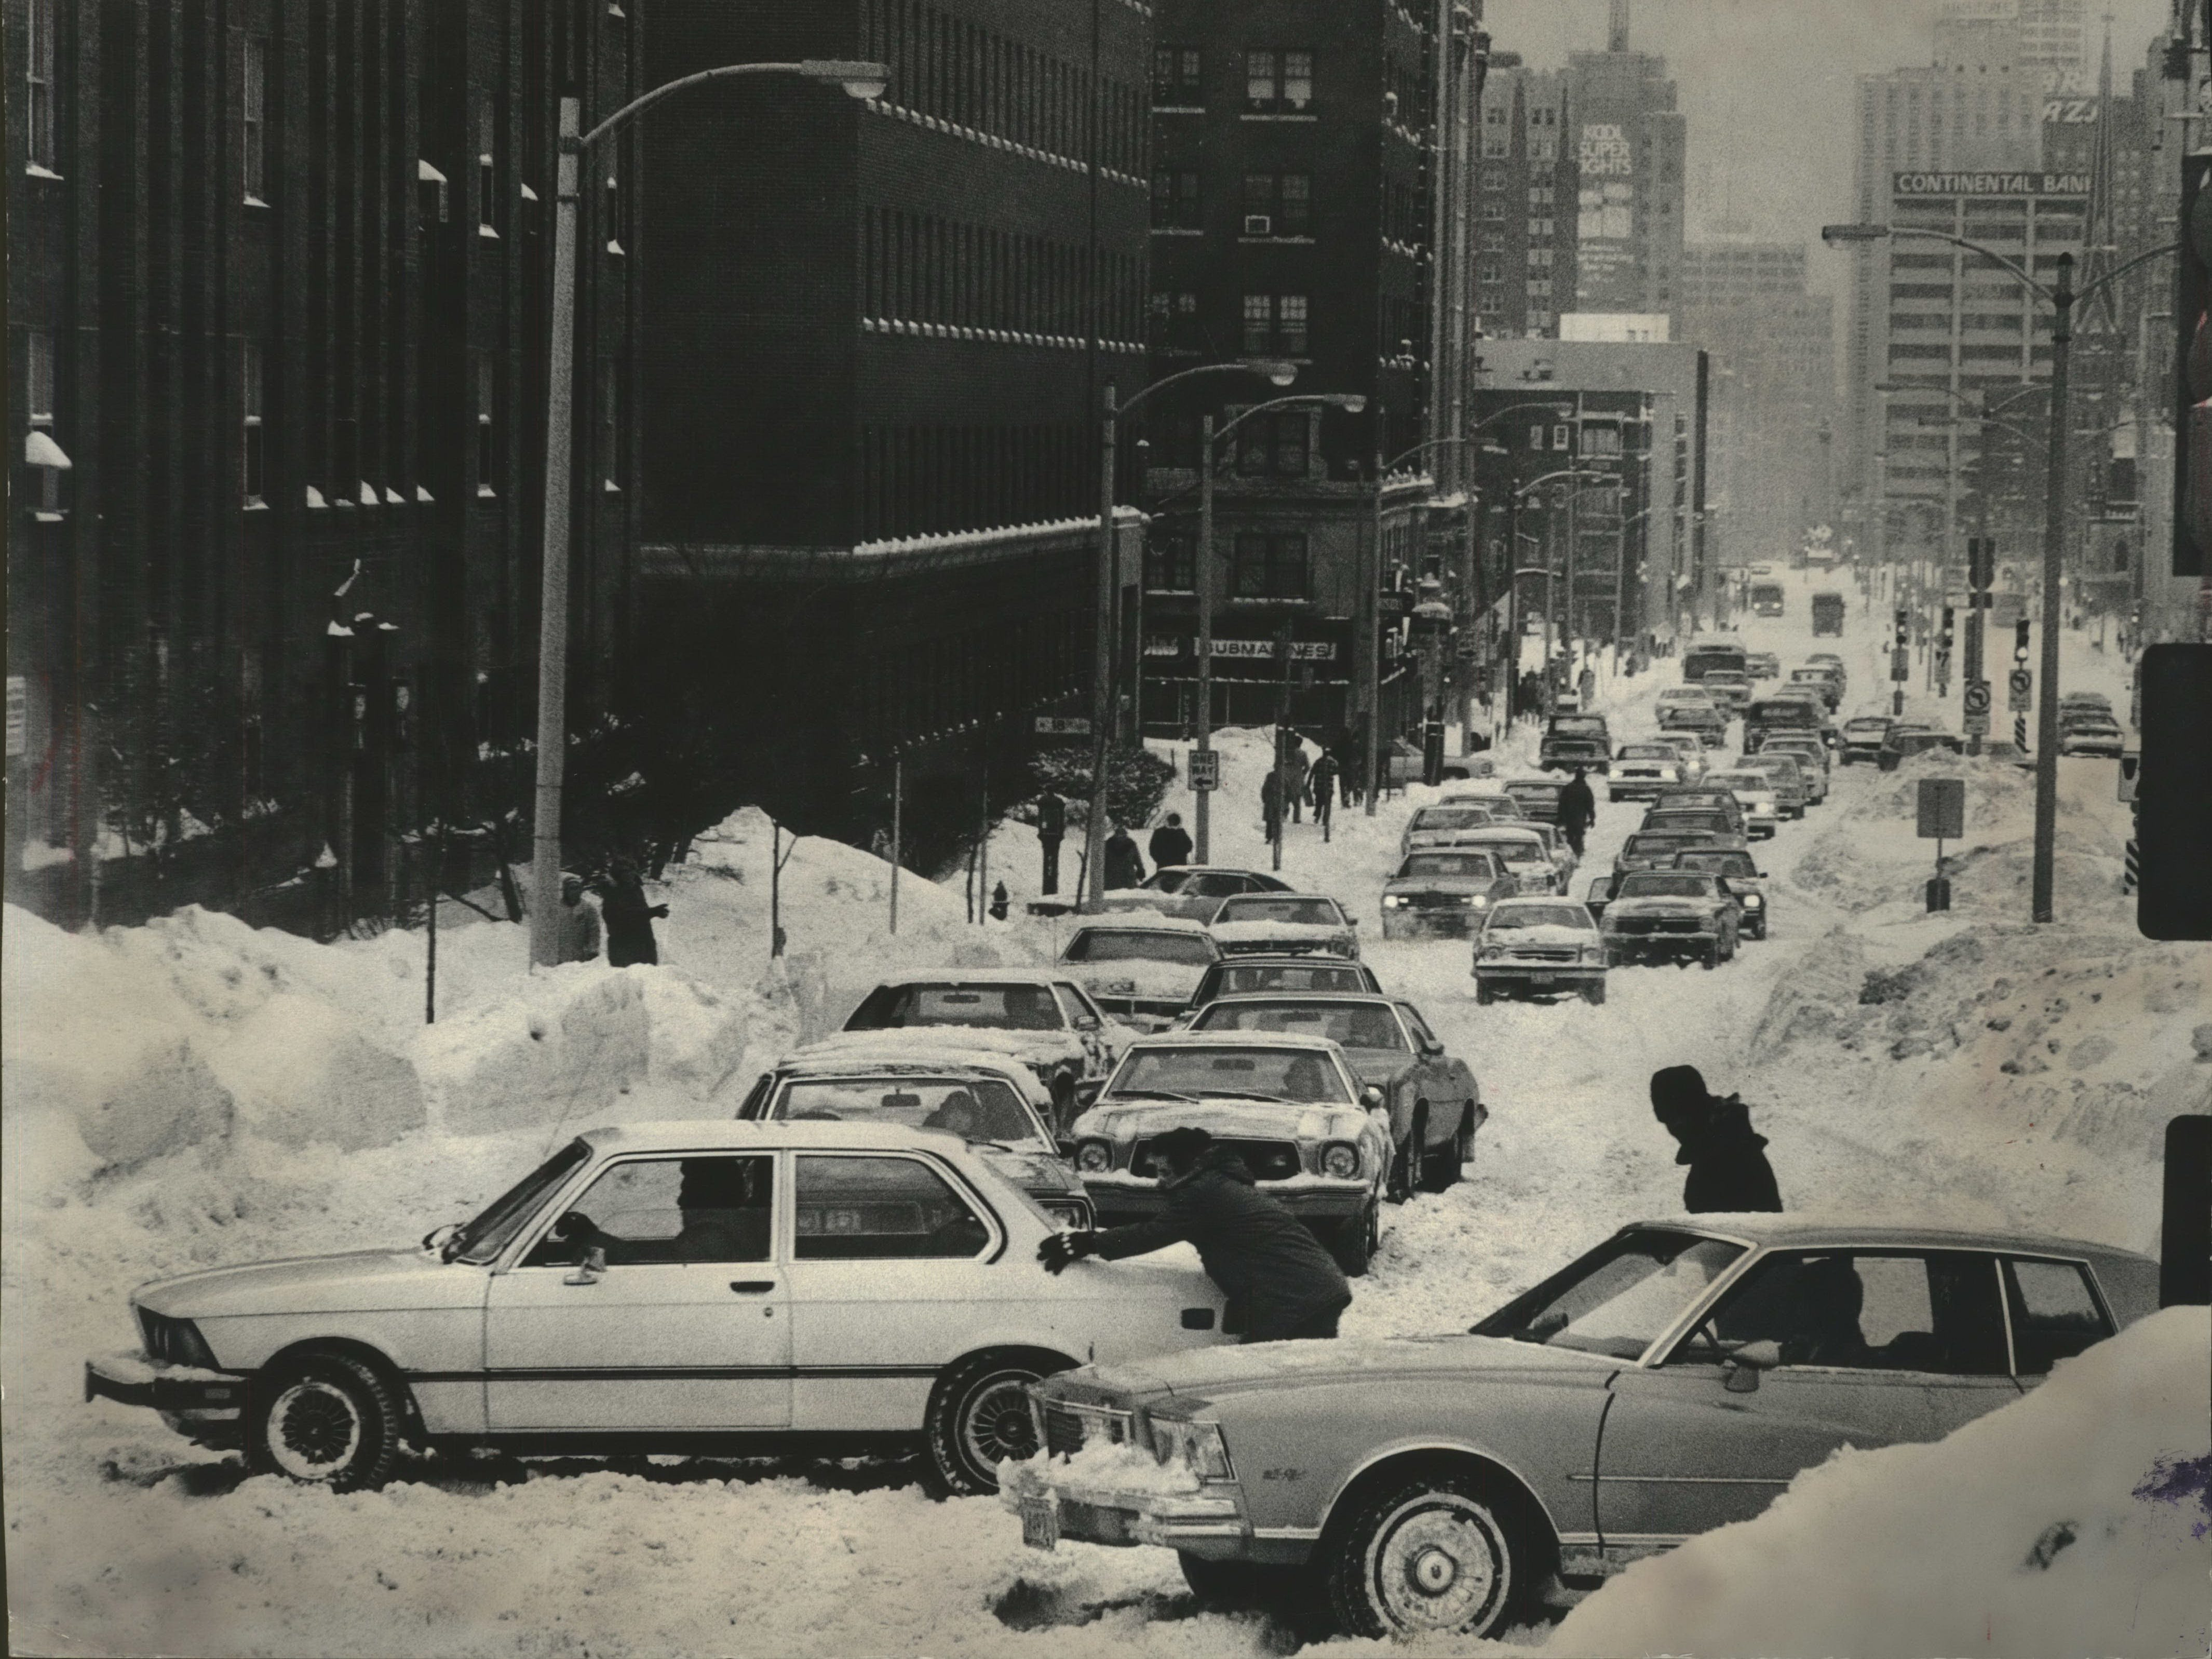 A car stuck at 19th Street adds to the troubles of motorists moving west on Wisconsin Avenue during rush hour on Jan. 24, 1979. At the time, Milwaukee drivers were grappling with their third major snowstorm in less than a month. This photo was published in the Jan. 25, 1979, Milwaukee Sentinel.